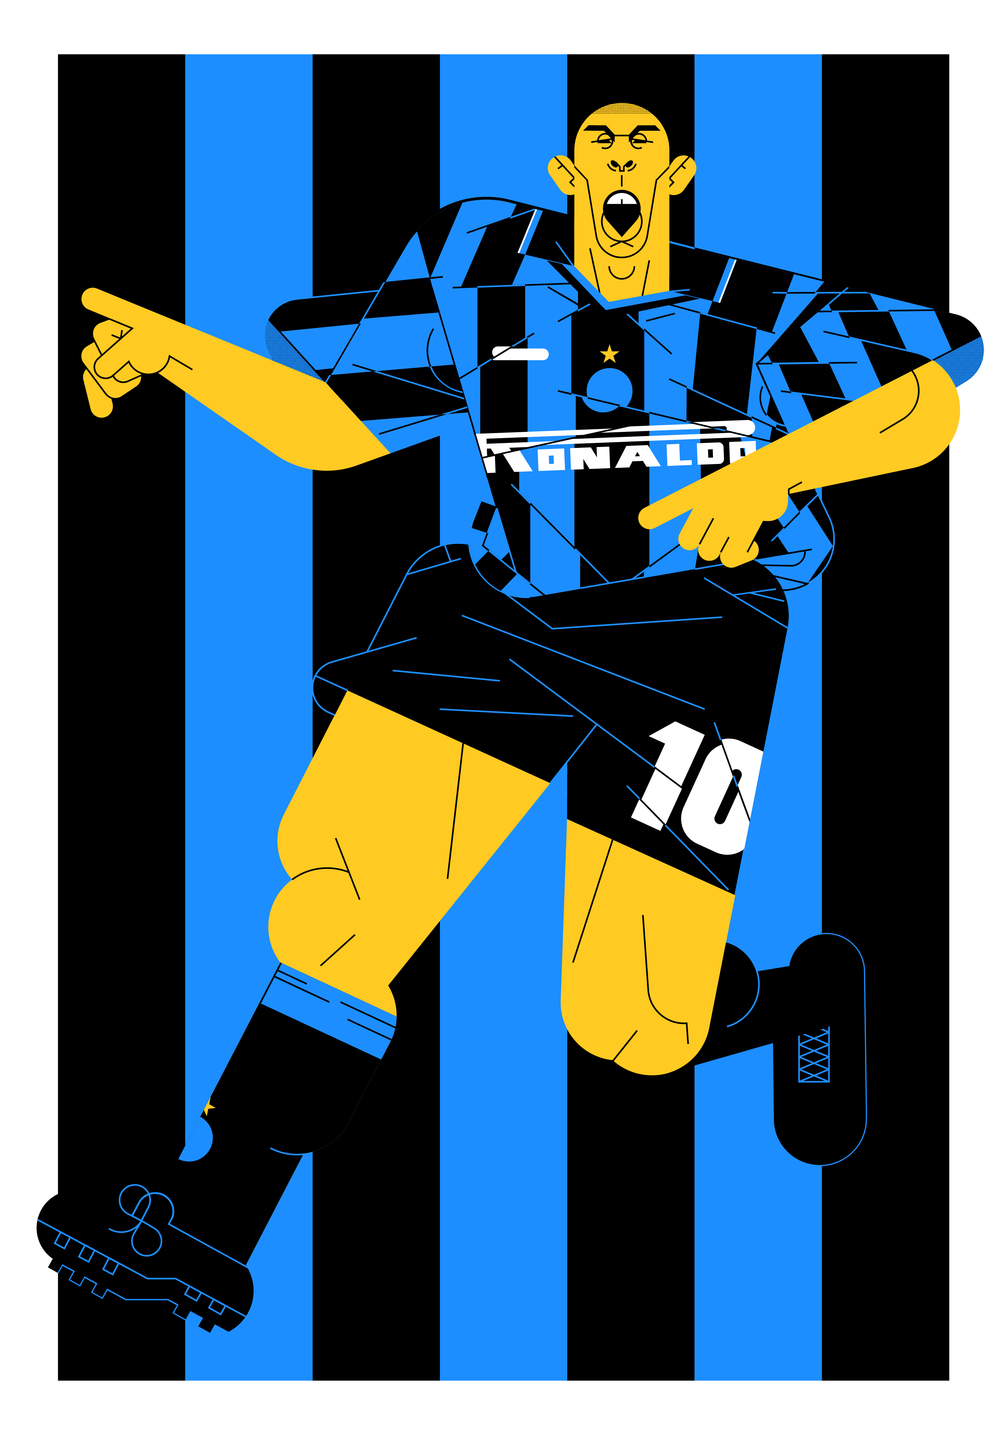 Football Players_Ronaldo inter_web.png